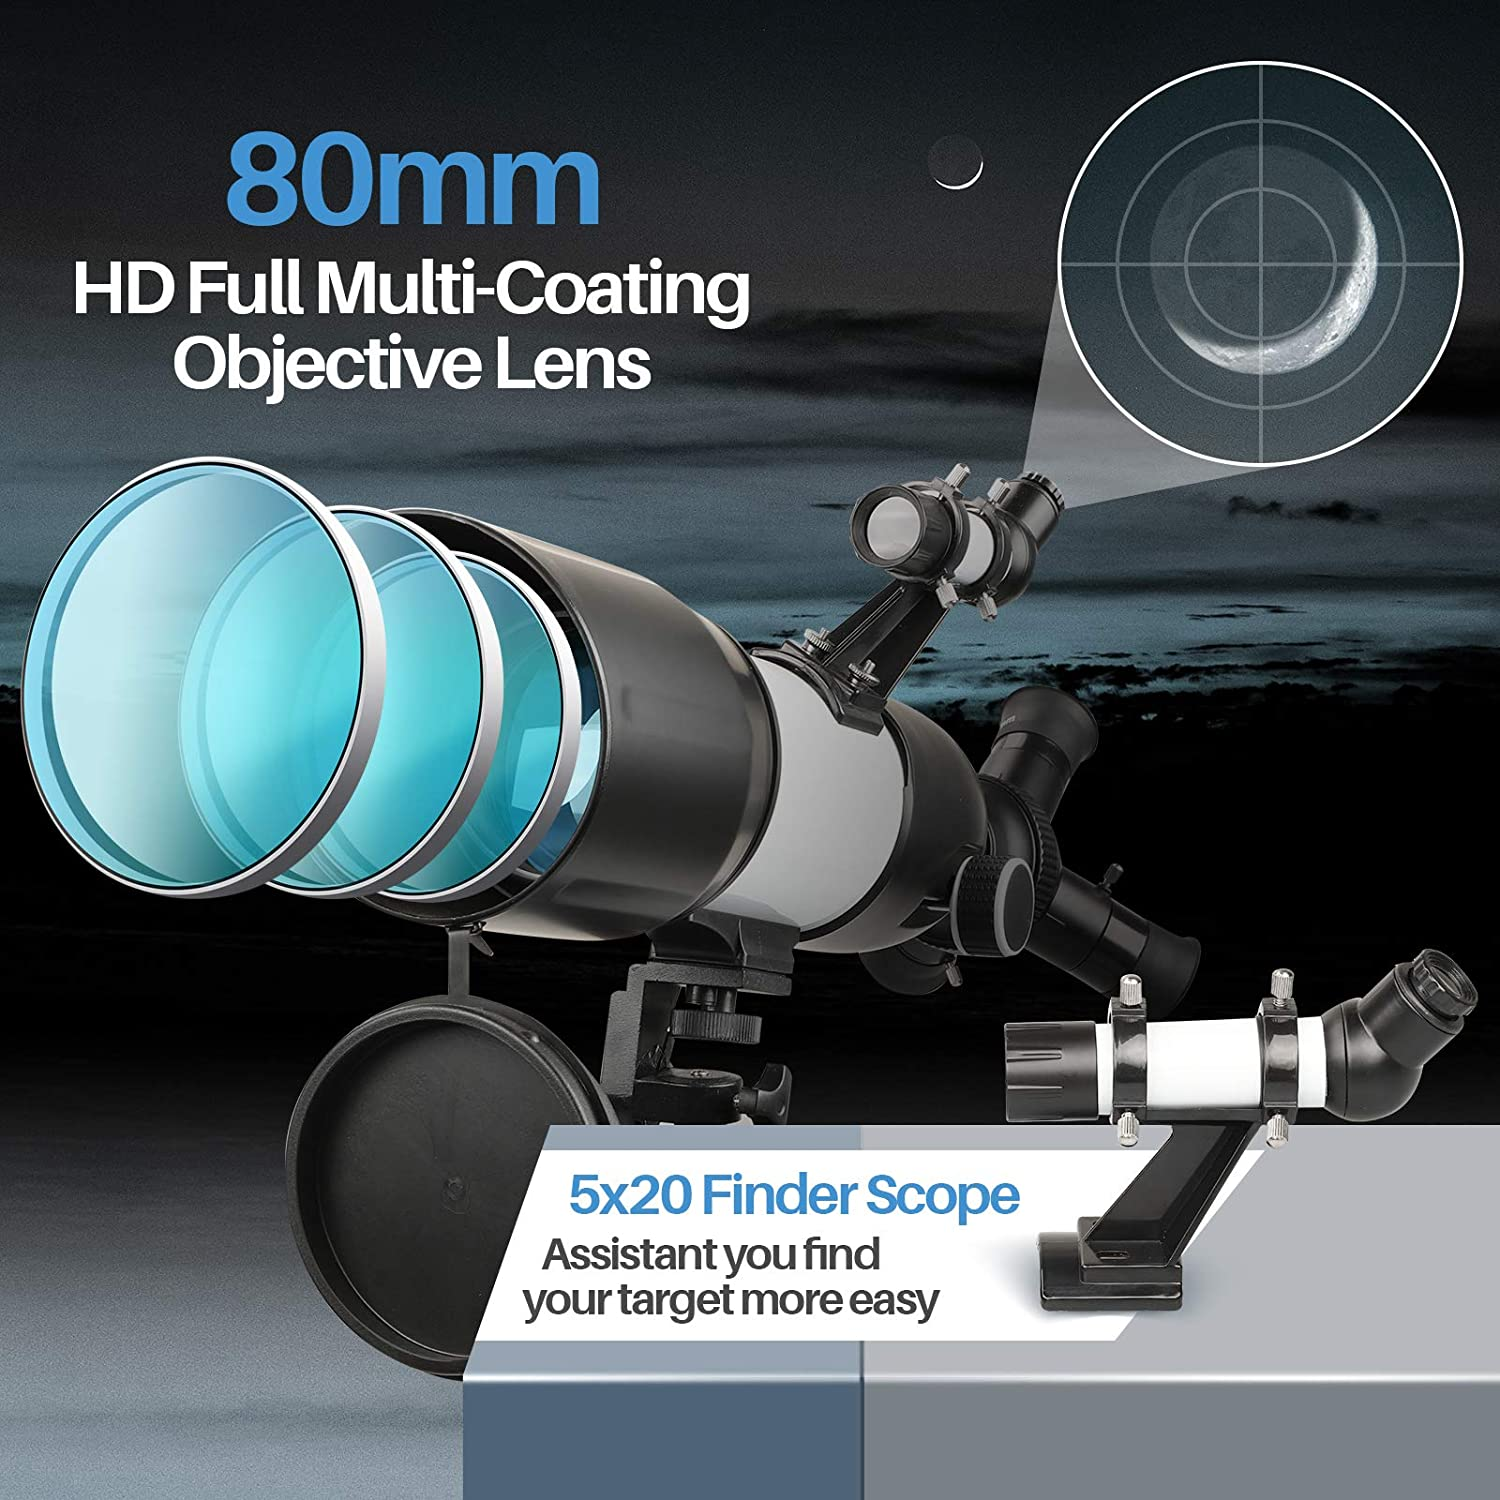 HD high Magnification Portable and Equipped with Phone Photo Adapter Telescope 80mm Aperture for Adults Kids Beginners,3 Rotatable Eyepieces 400mm Mount Astronomical Refracting Telescope